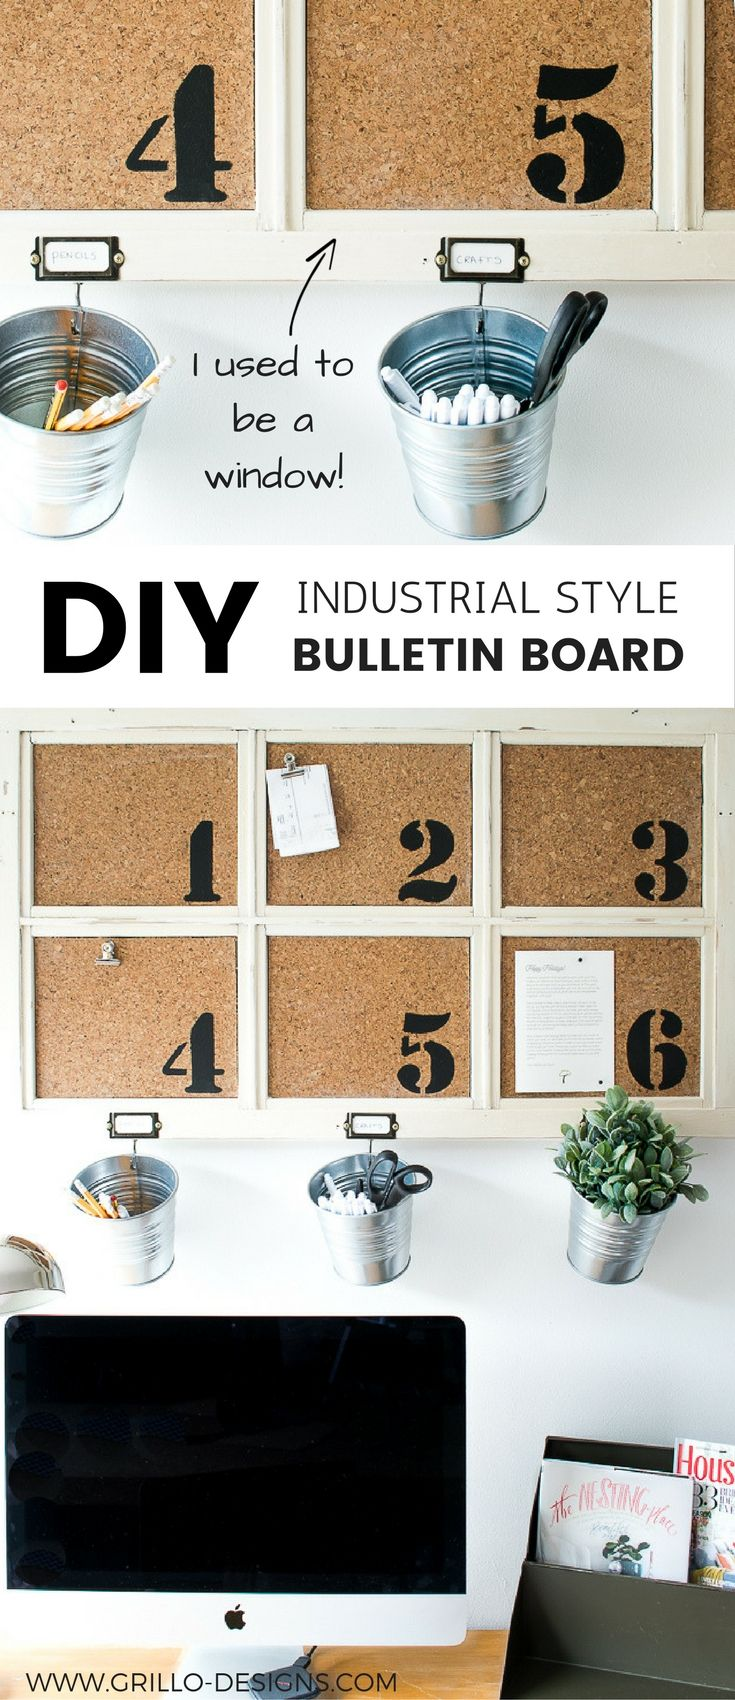 Industrial DIY Bulletin Board - Learn how to repurpose a window frame into a rustic looking bulletin board for your office space!